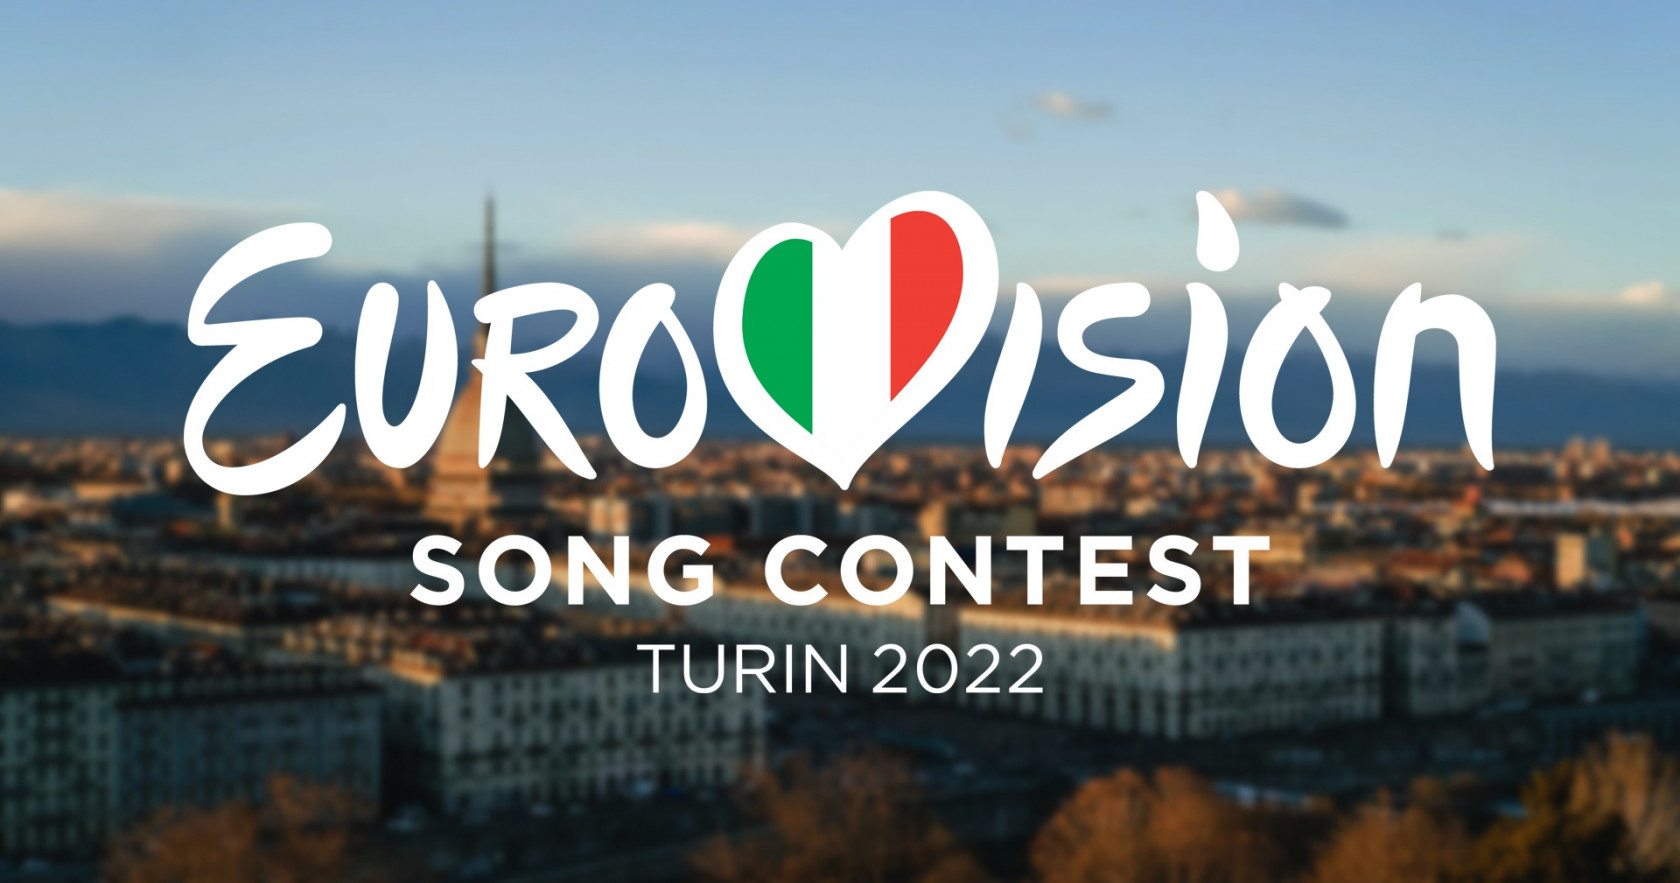 Turin Eurovision Song Contest 2022